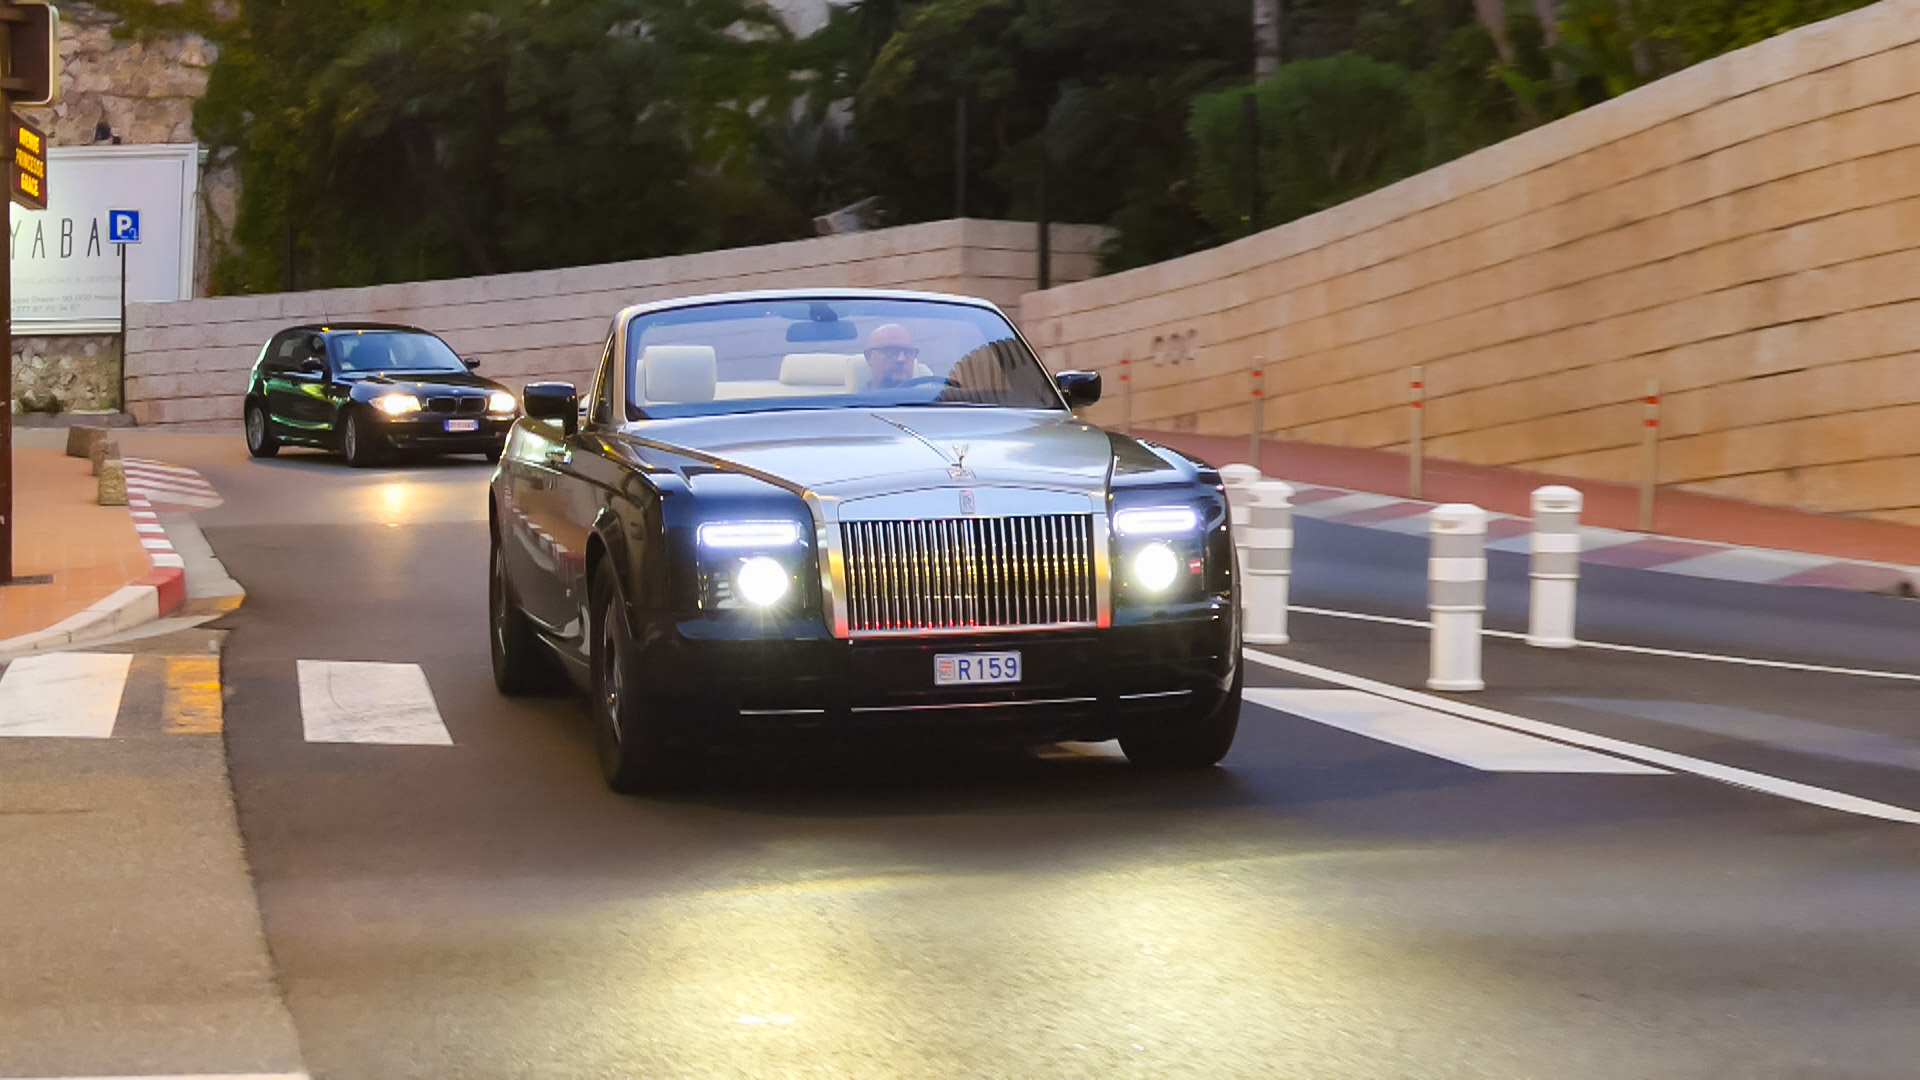 Rolls Royce Drophead - R159 (MC)